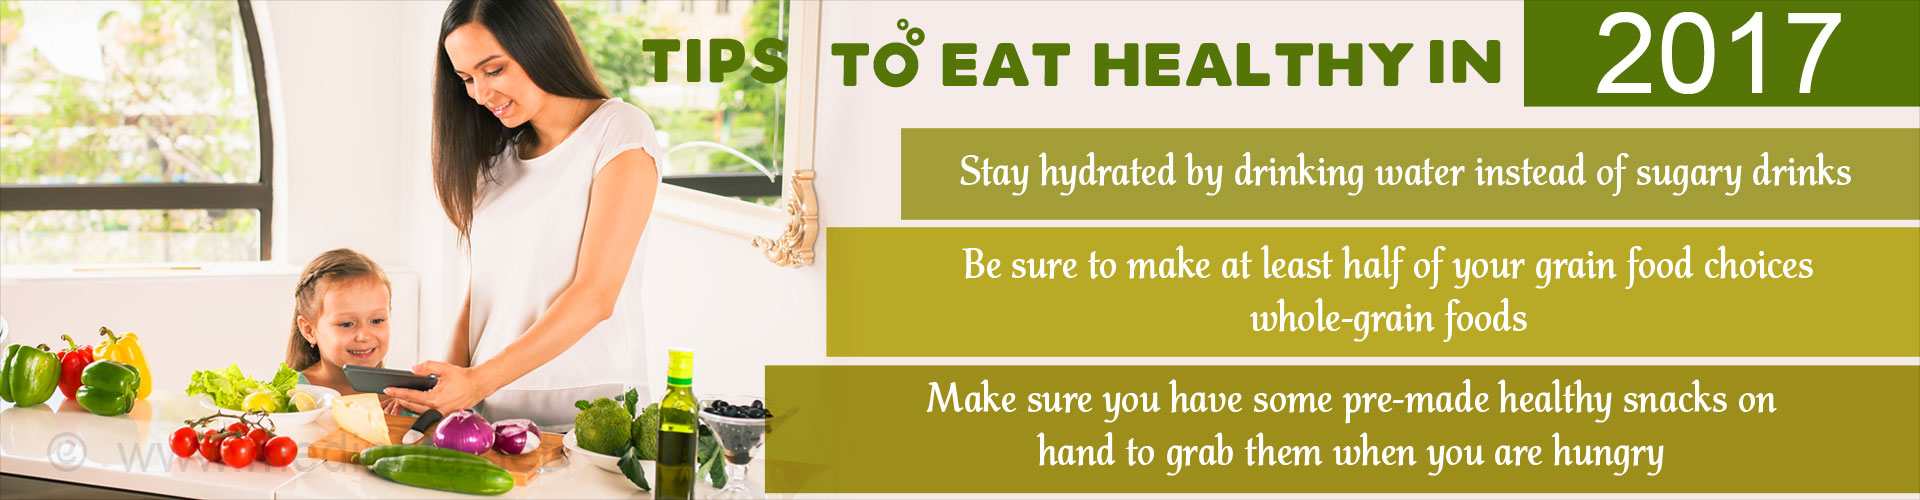 Tips to Eat Healthy in 2017